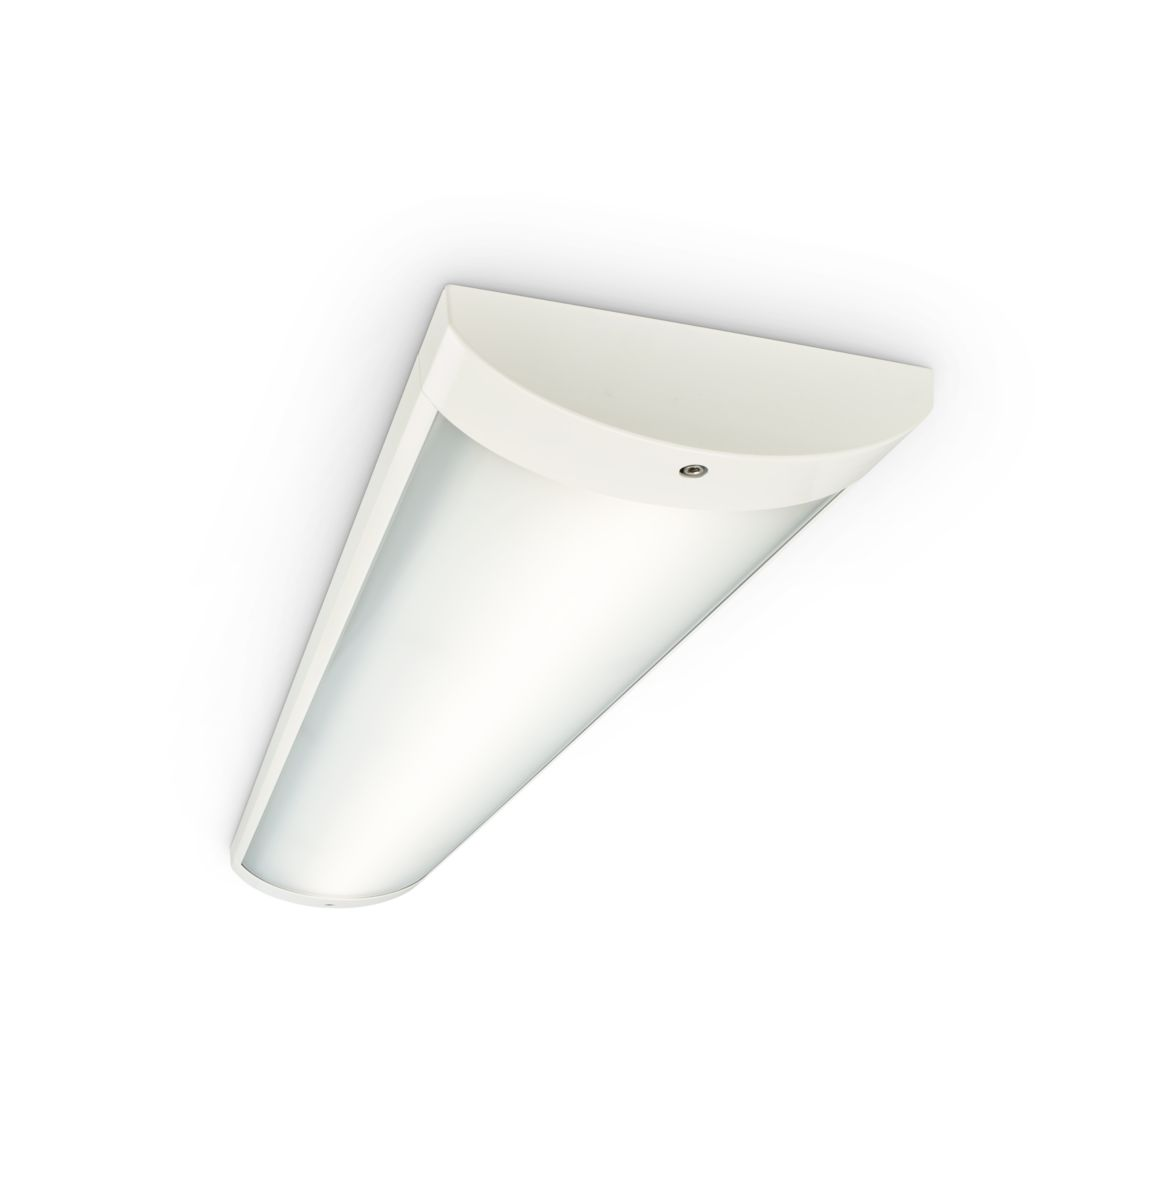 Eclairage Led Philips Luminaires Pour Léclairage Des Tunnels Philips Lighting